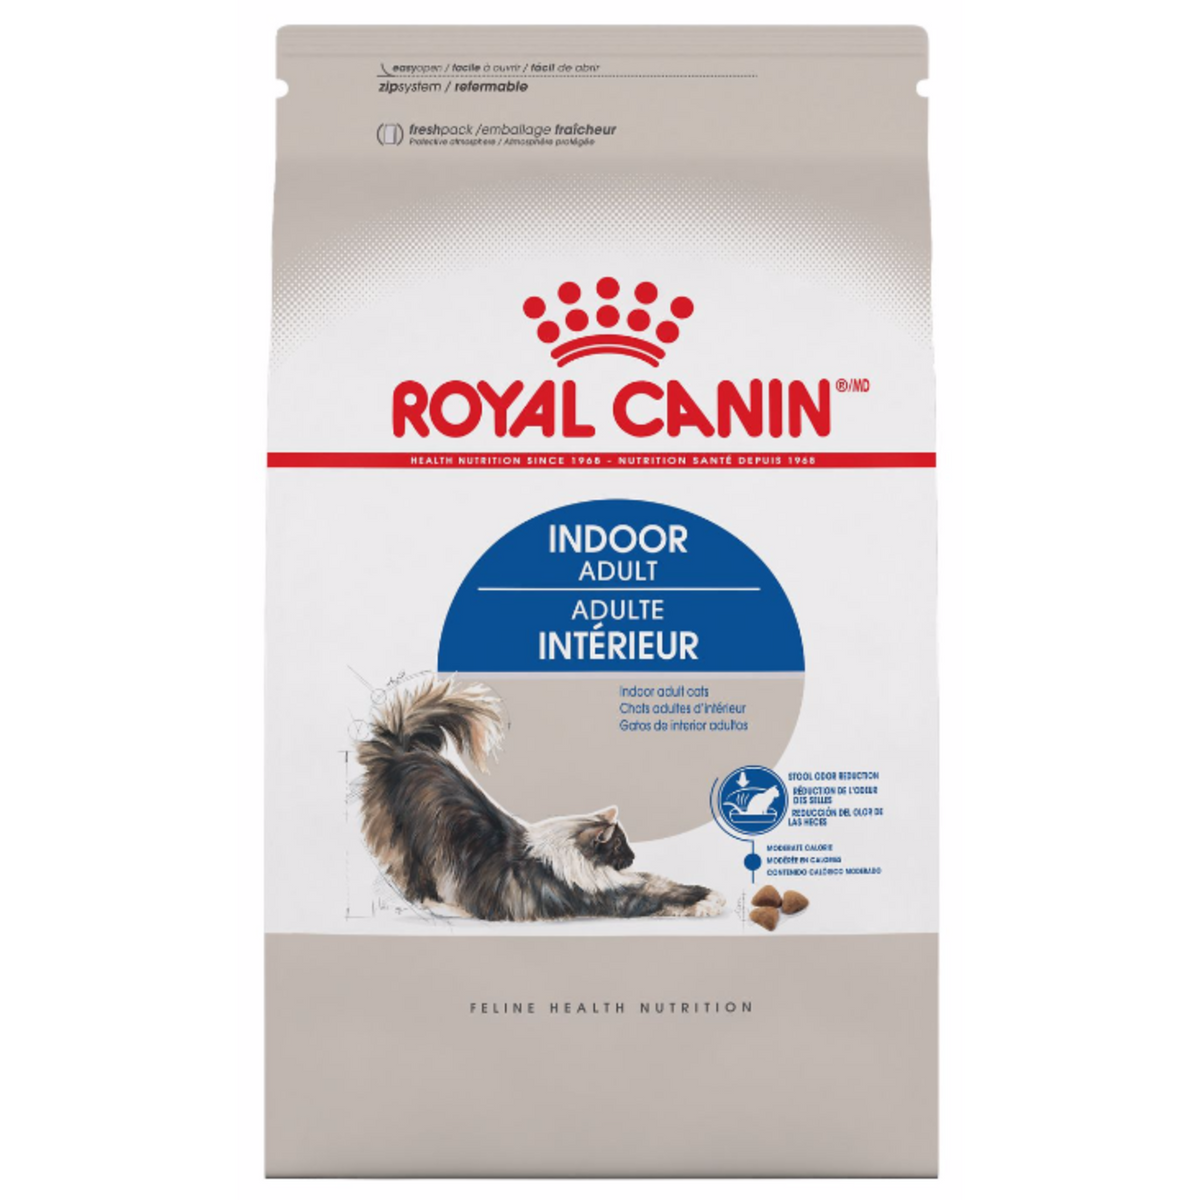 Royal Canin Indoor Adult Cat Food